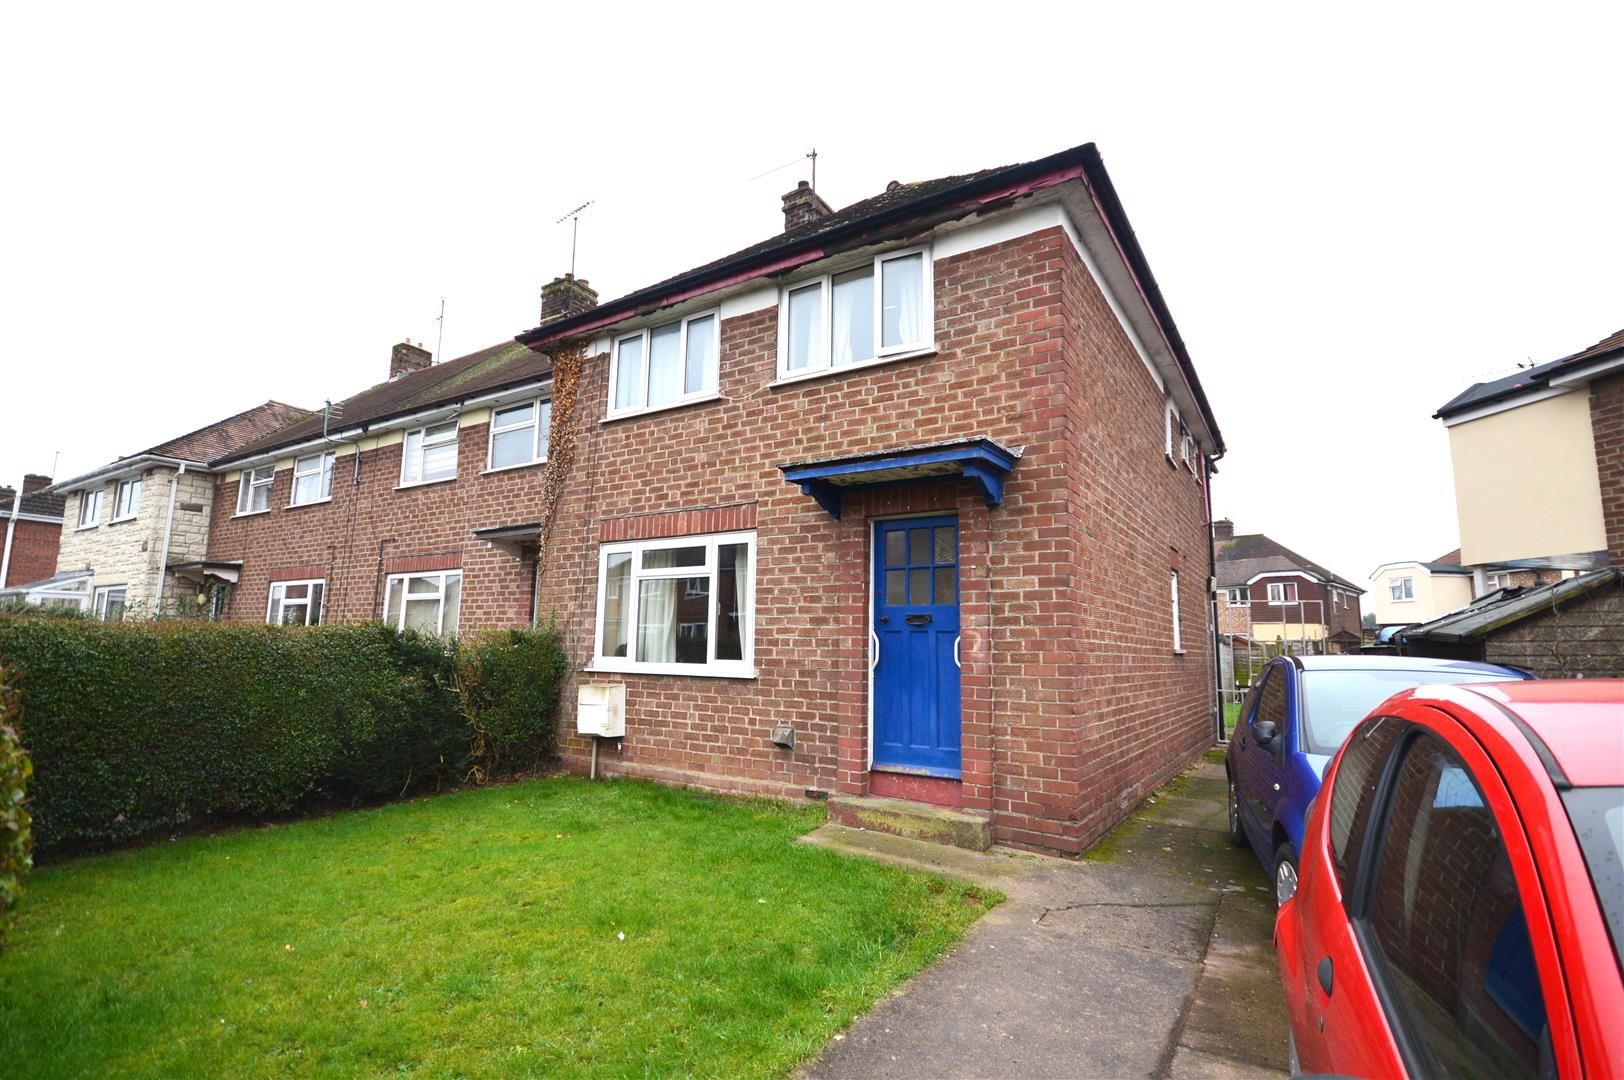 3 bed semi-detached for sale, HR2